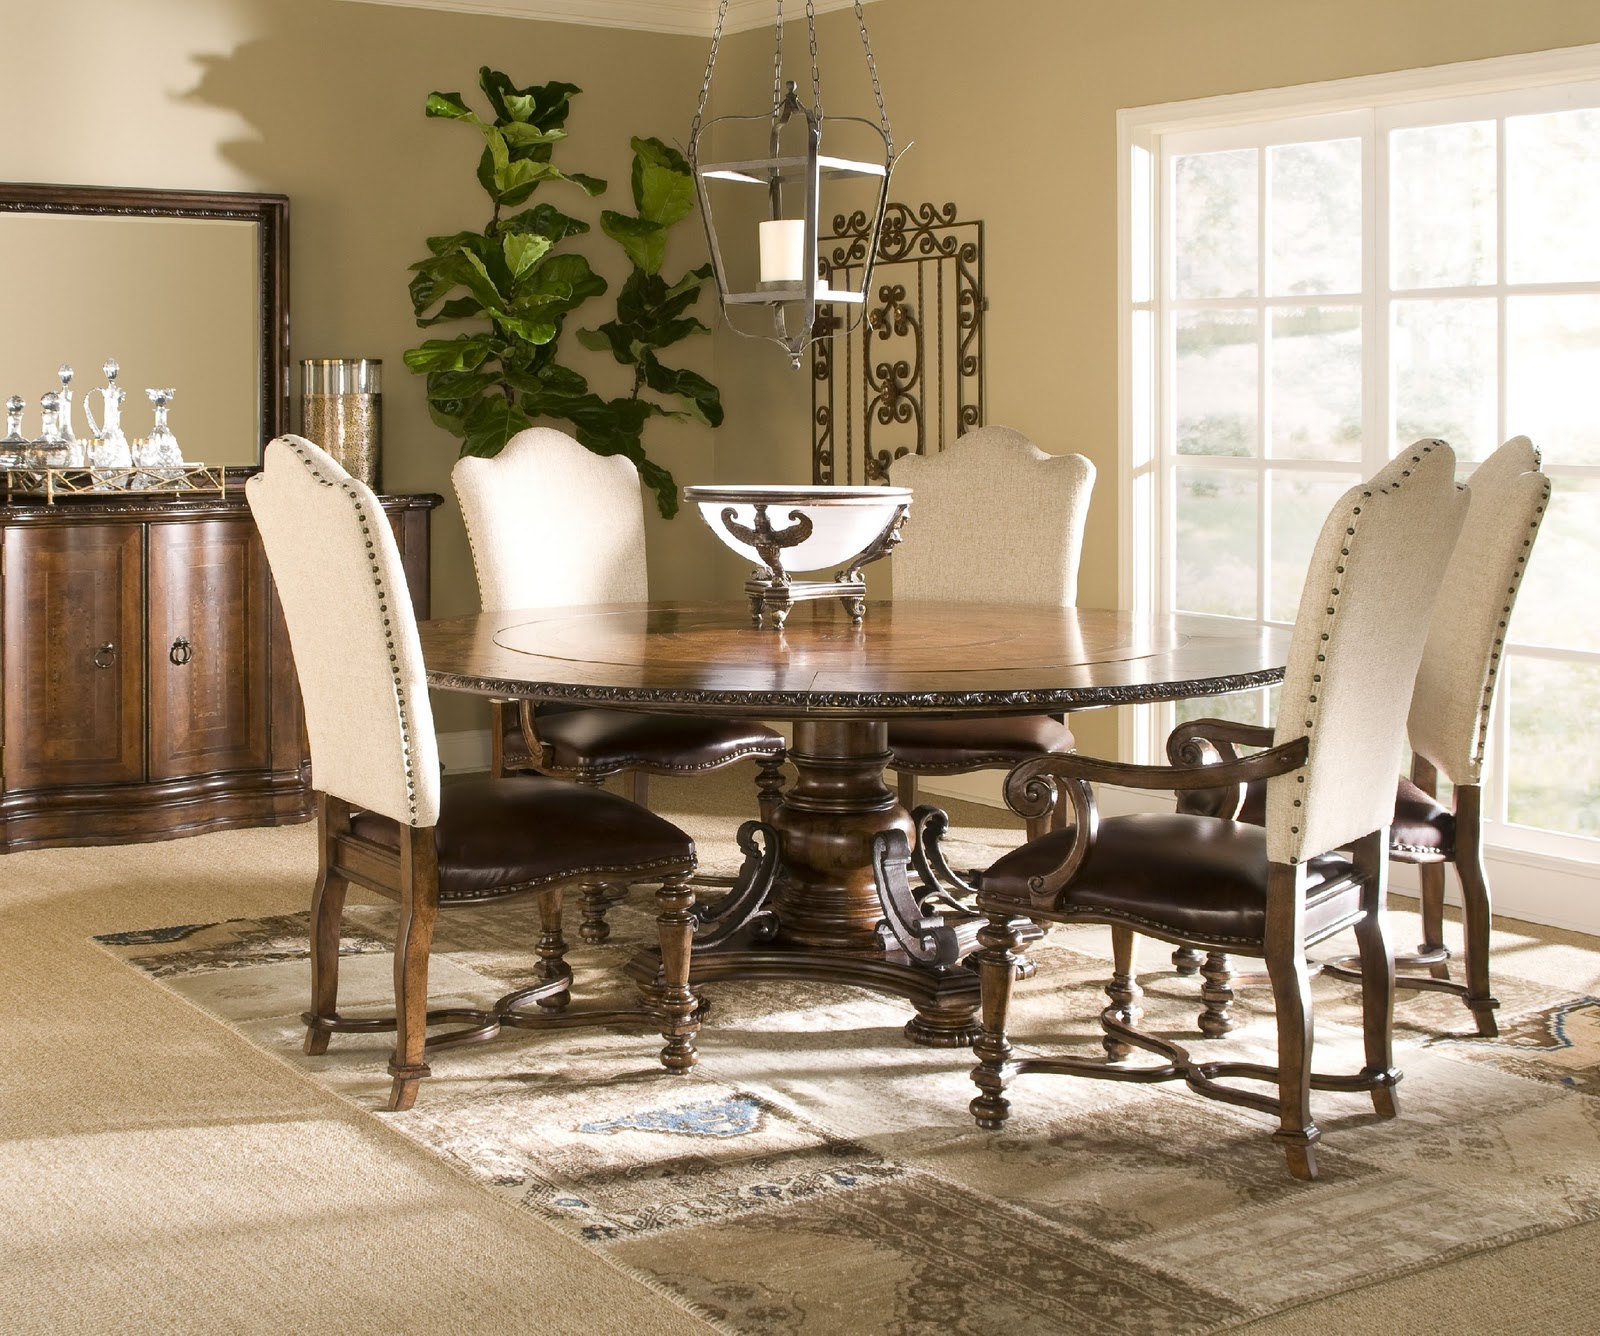 Gift Amp Home Today Dining Room Collection With A Spanish Flair